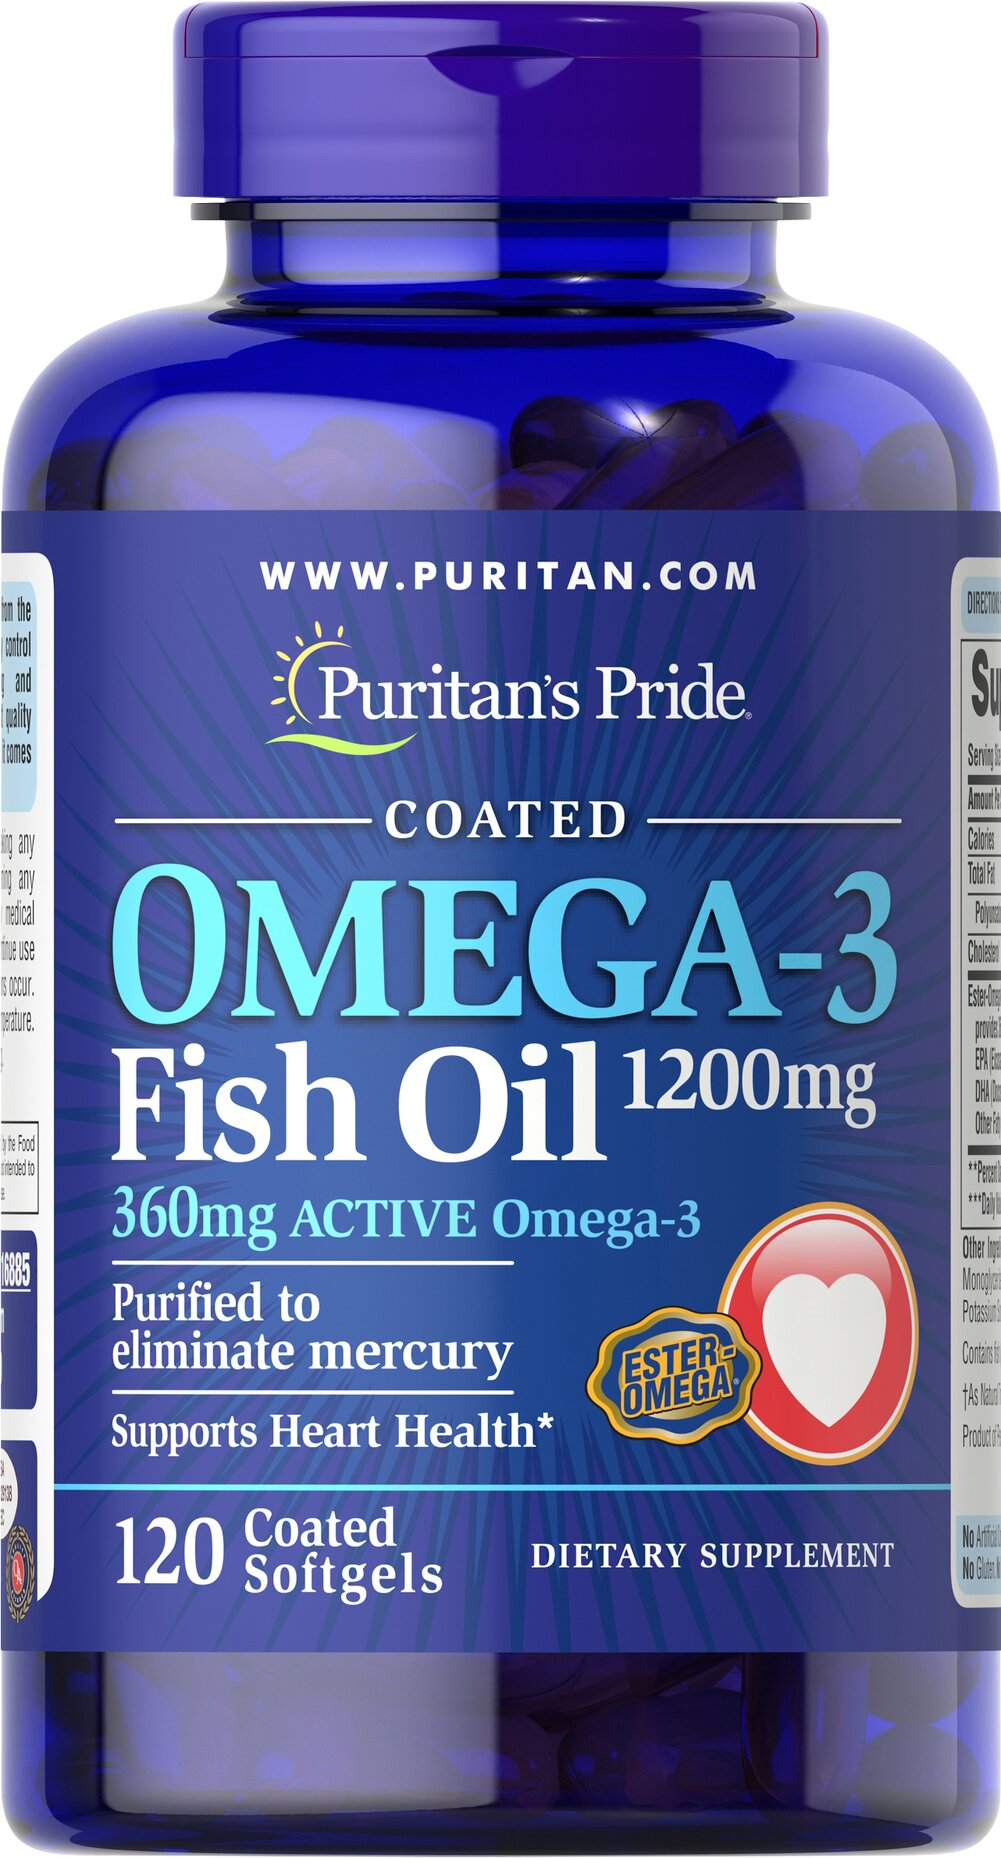 Omega-3 Fish Oil Coated 1200 mg (360 mg Active Omega-3)  120 Coated Softgels 1200 mg $22.39